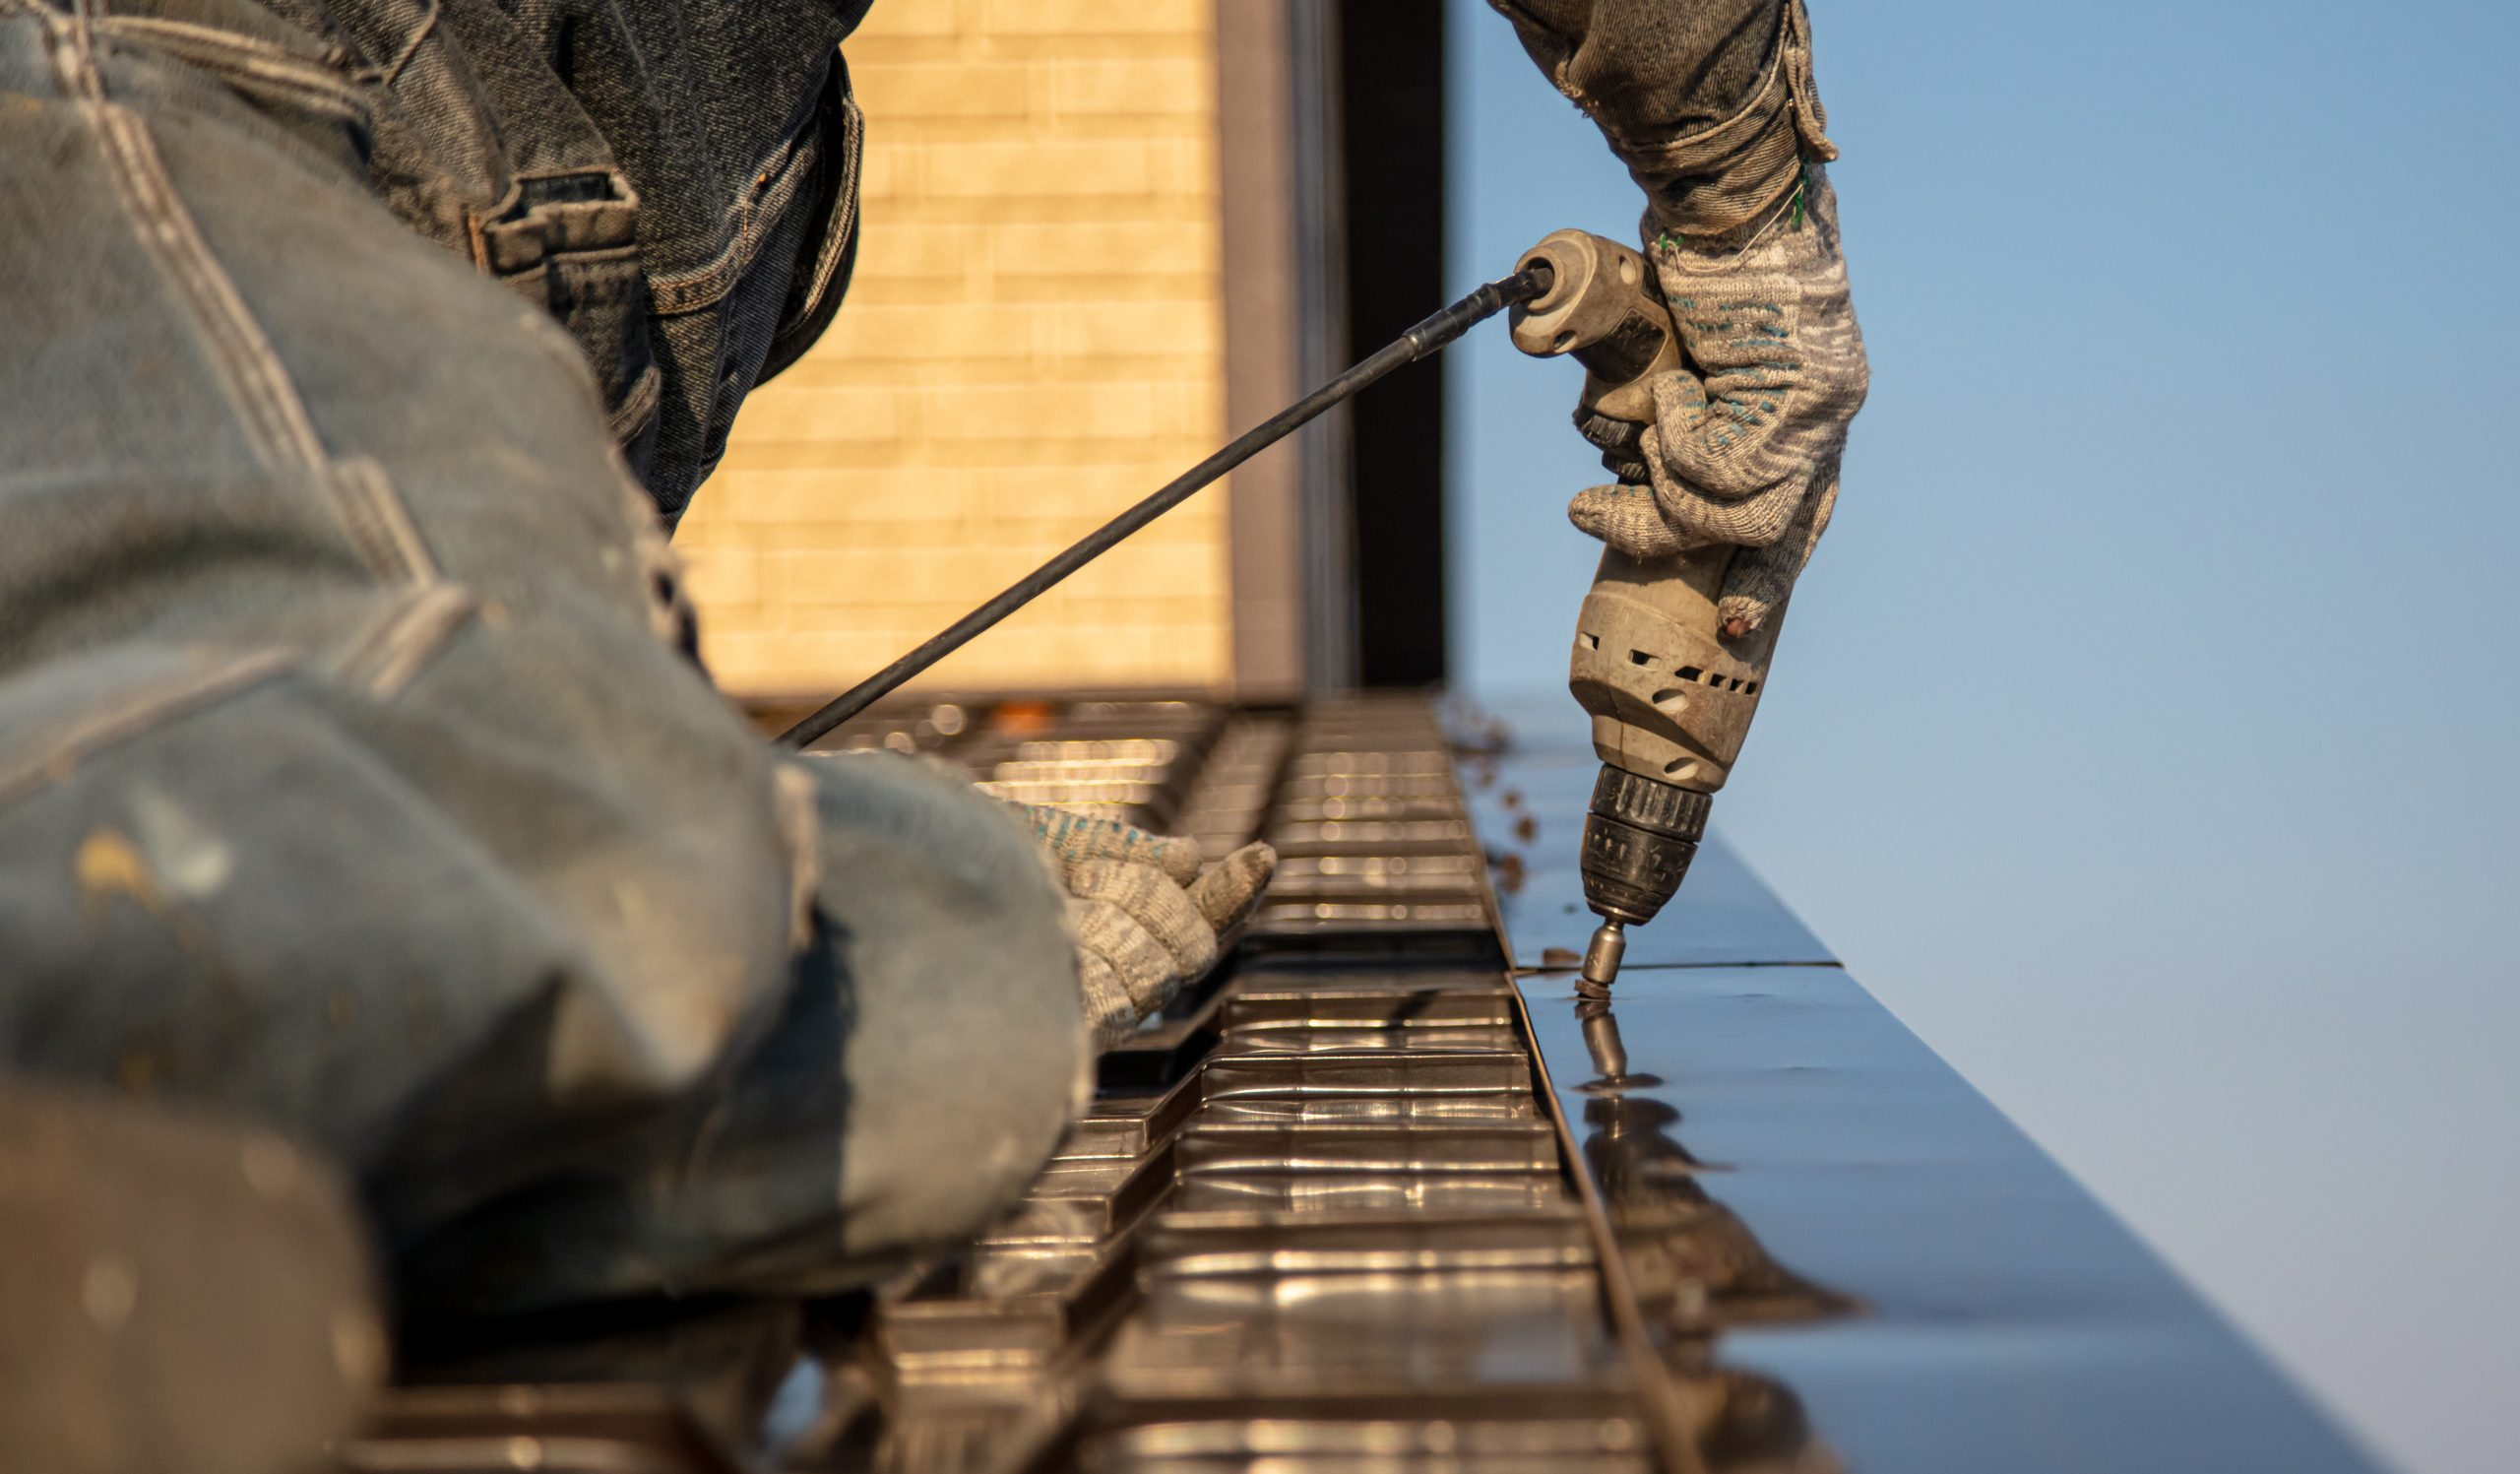 metal roof installer drilling shiny new metal sheets onto roof